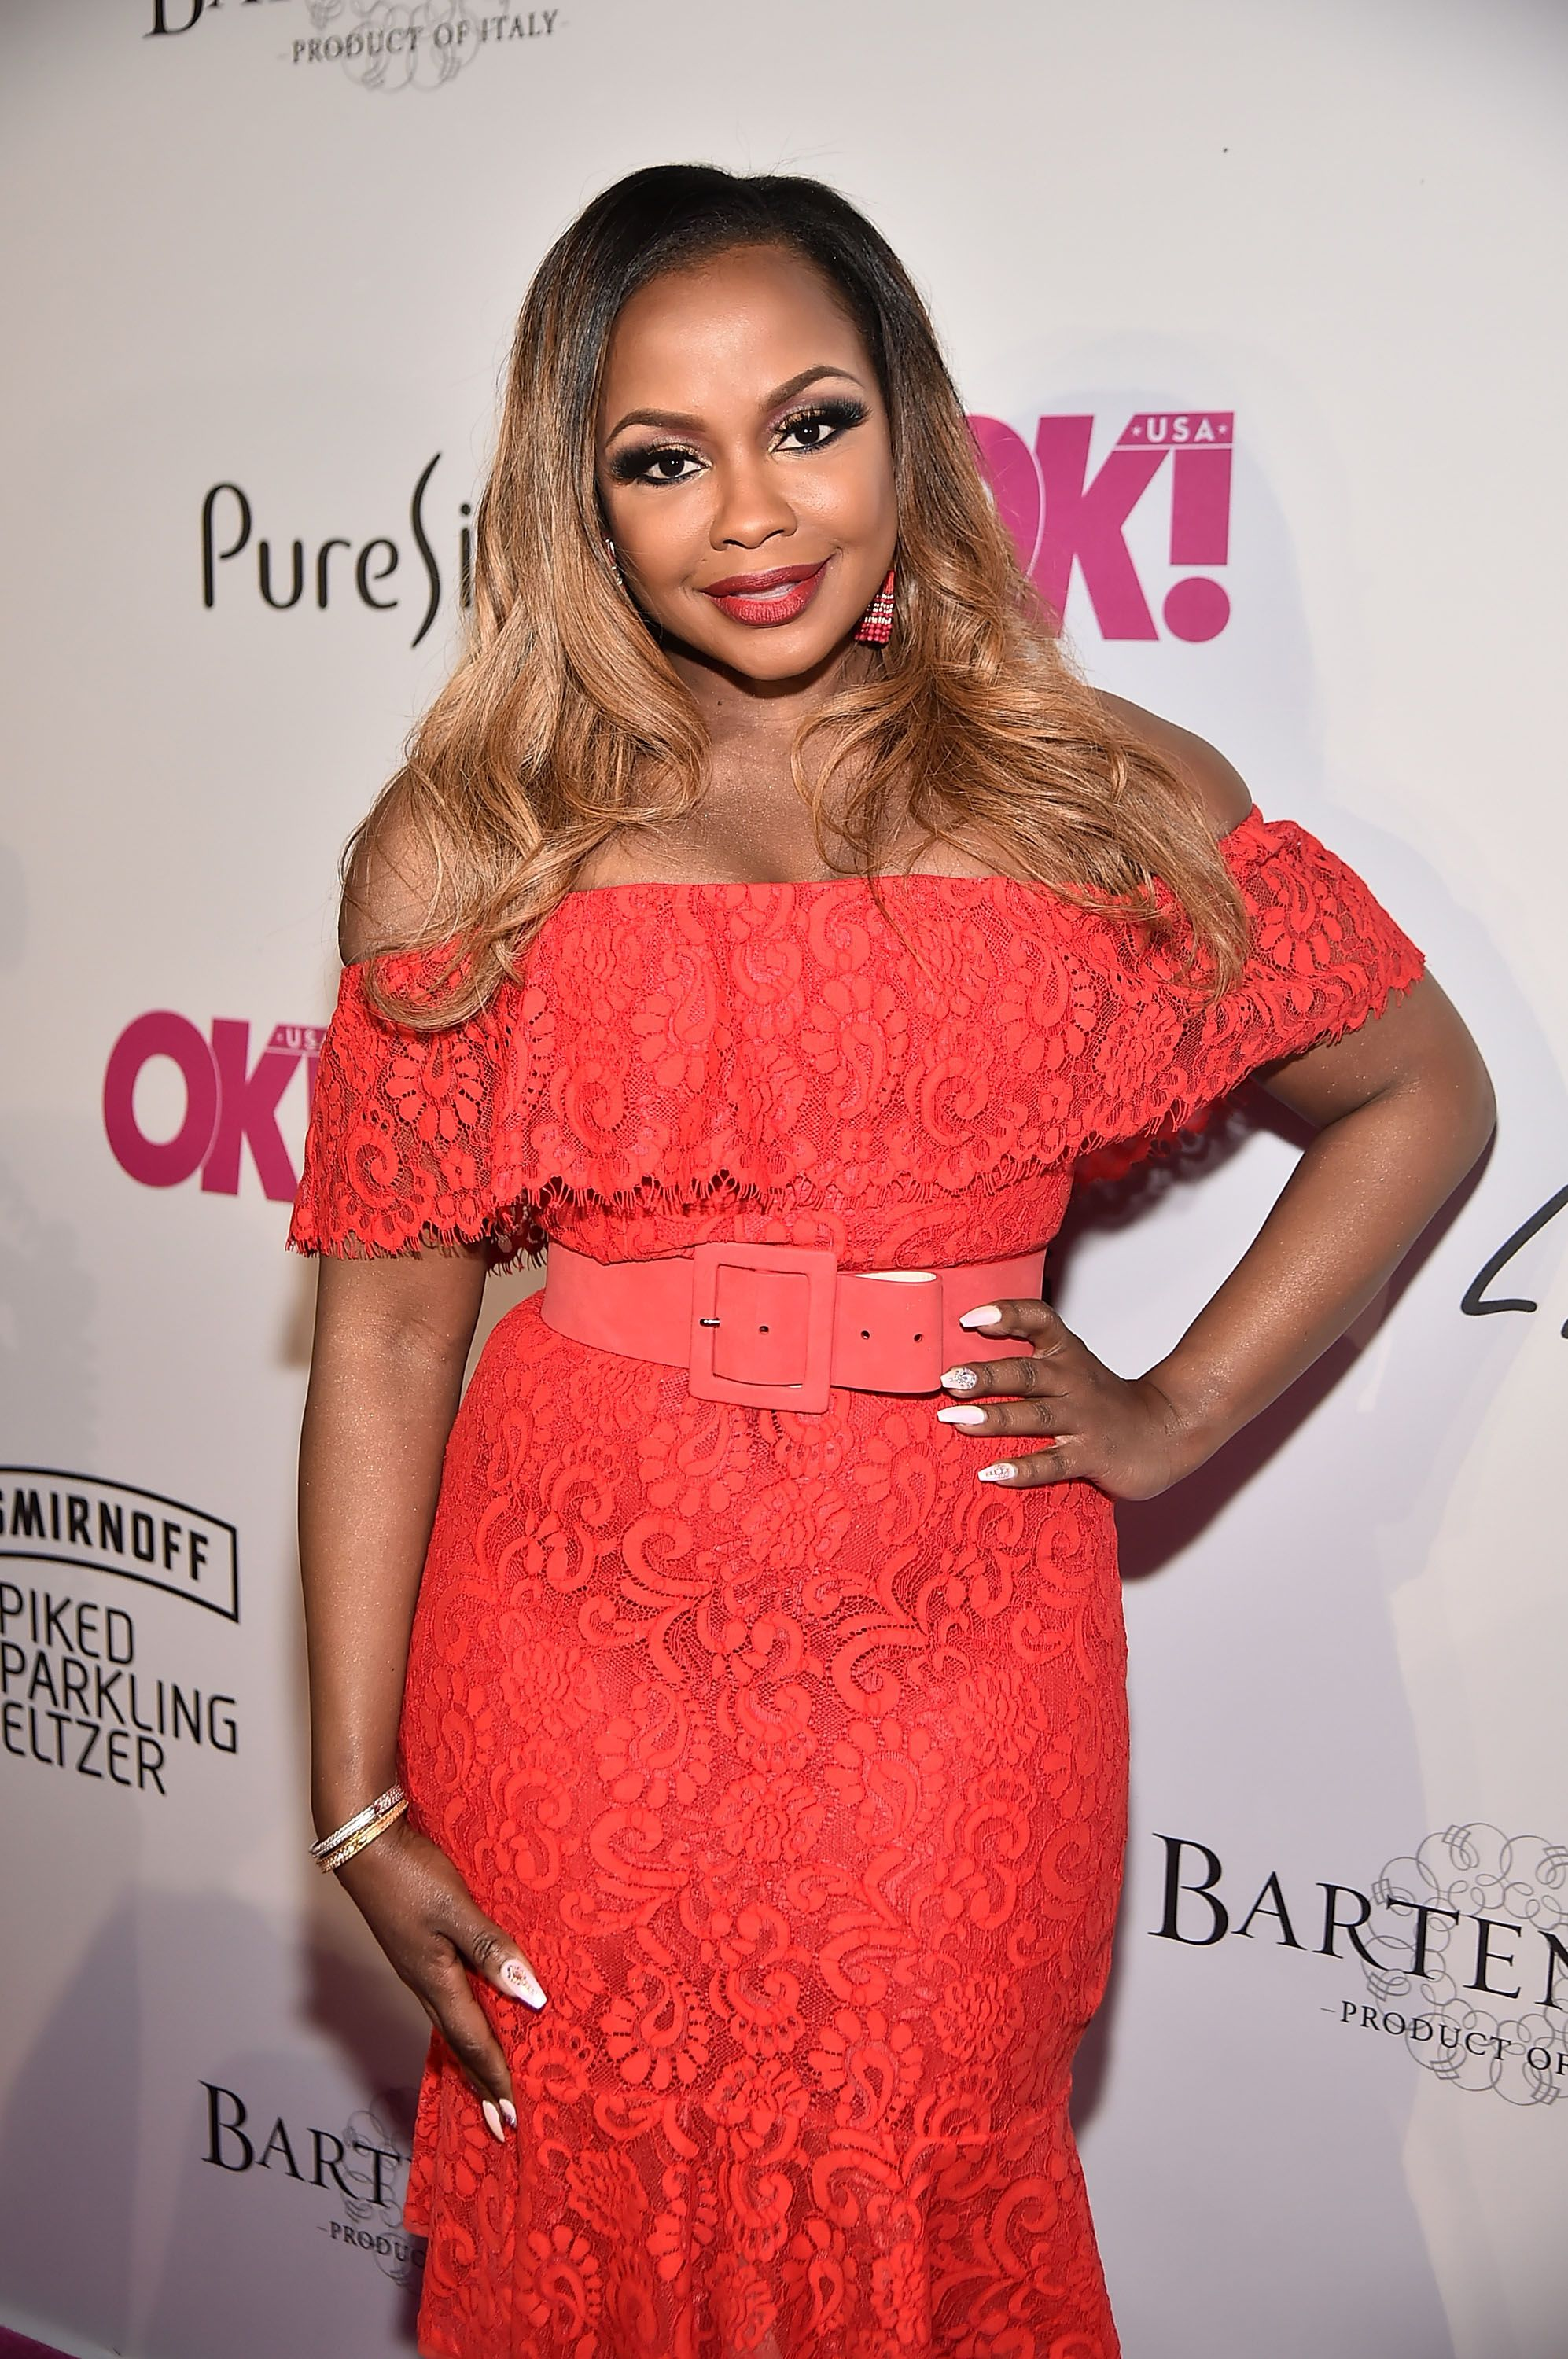 Phaedra Parks attends the OK! Magazine Summer Kickoff Party on May 15, 2018 in New York.   Photo: Getty Images